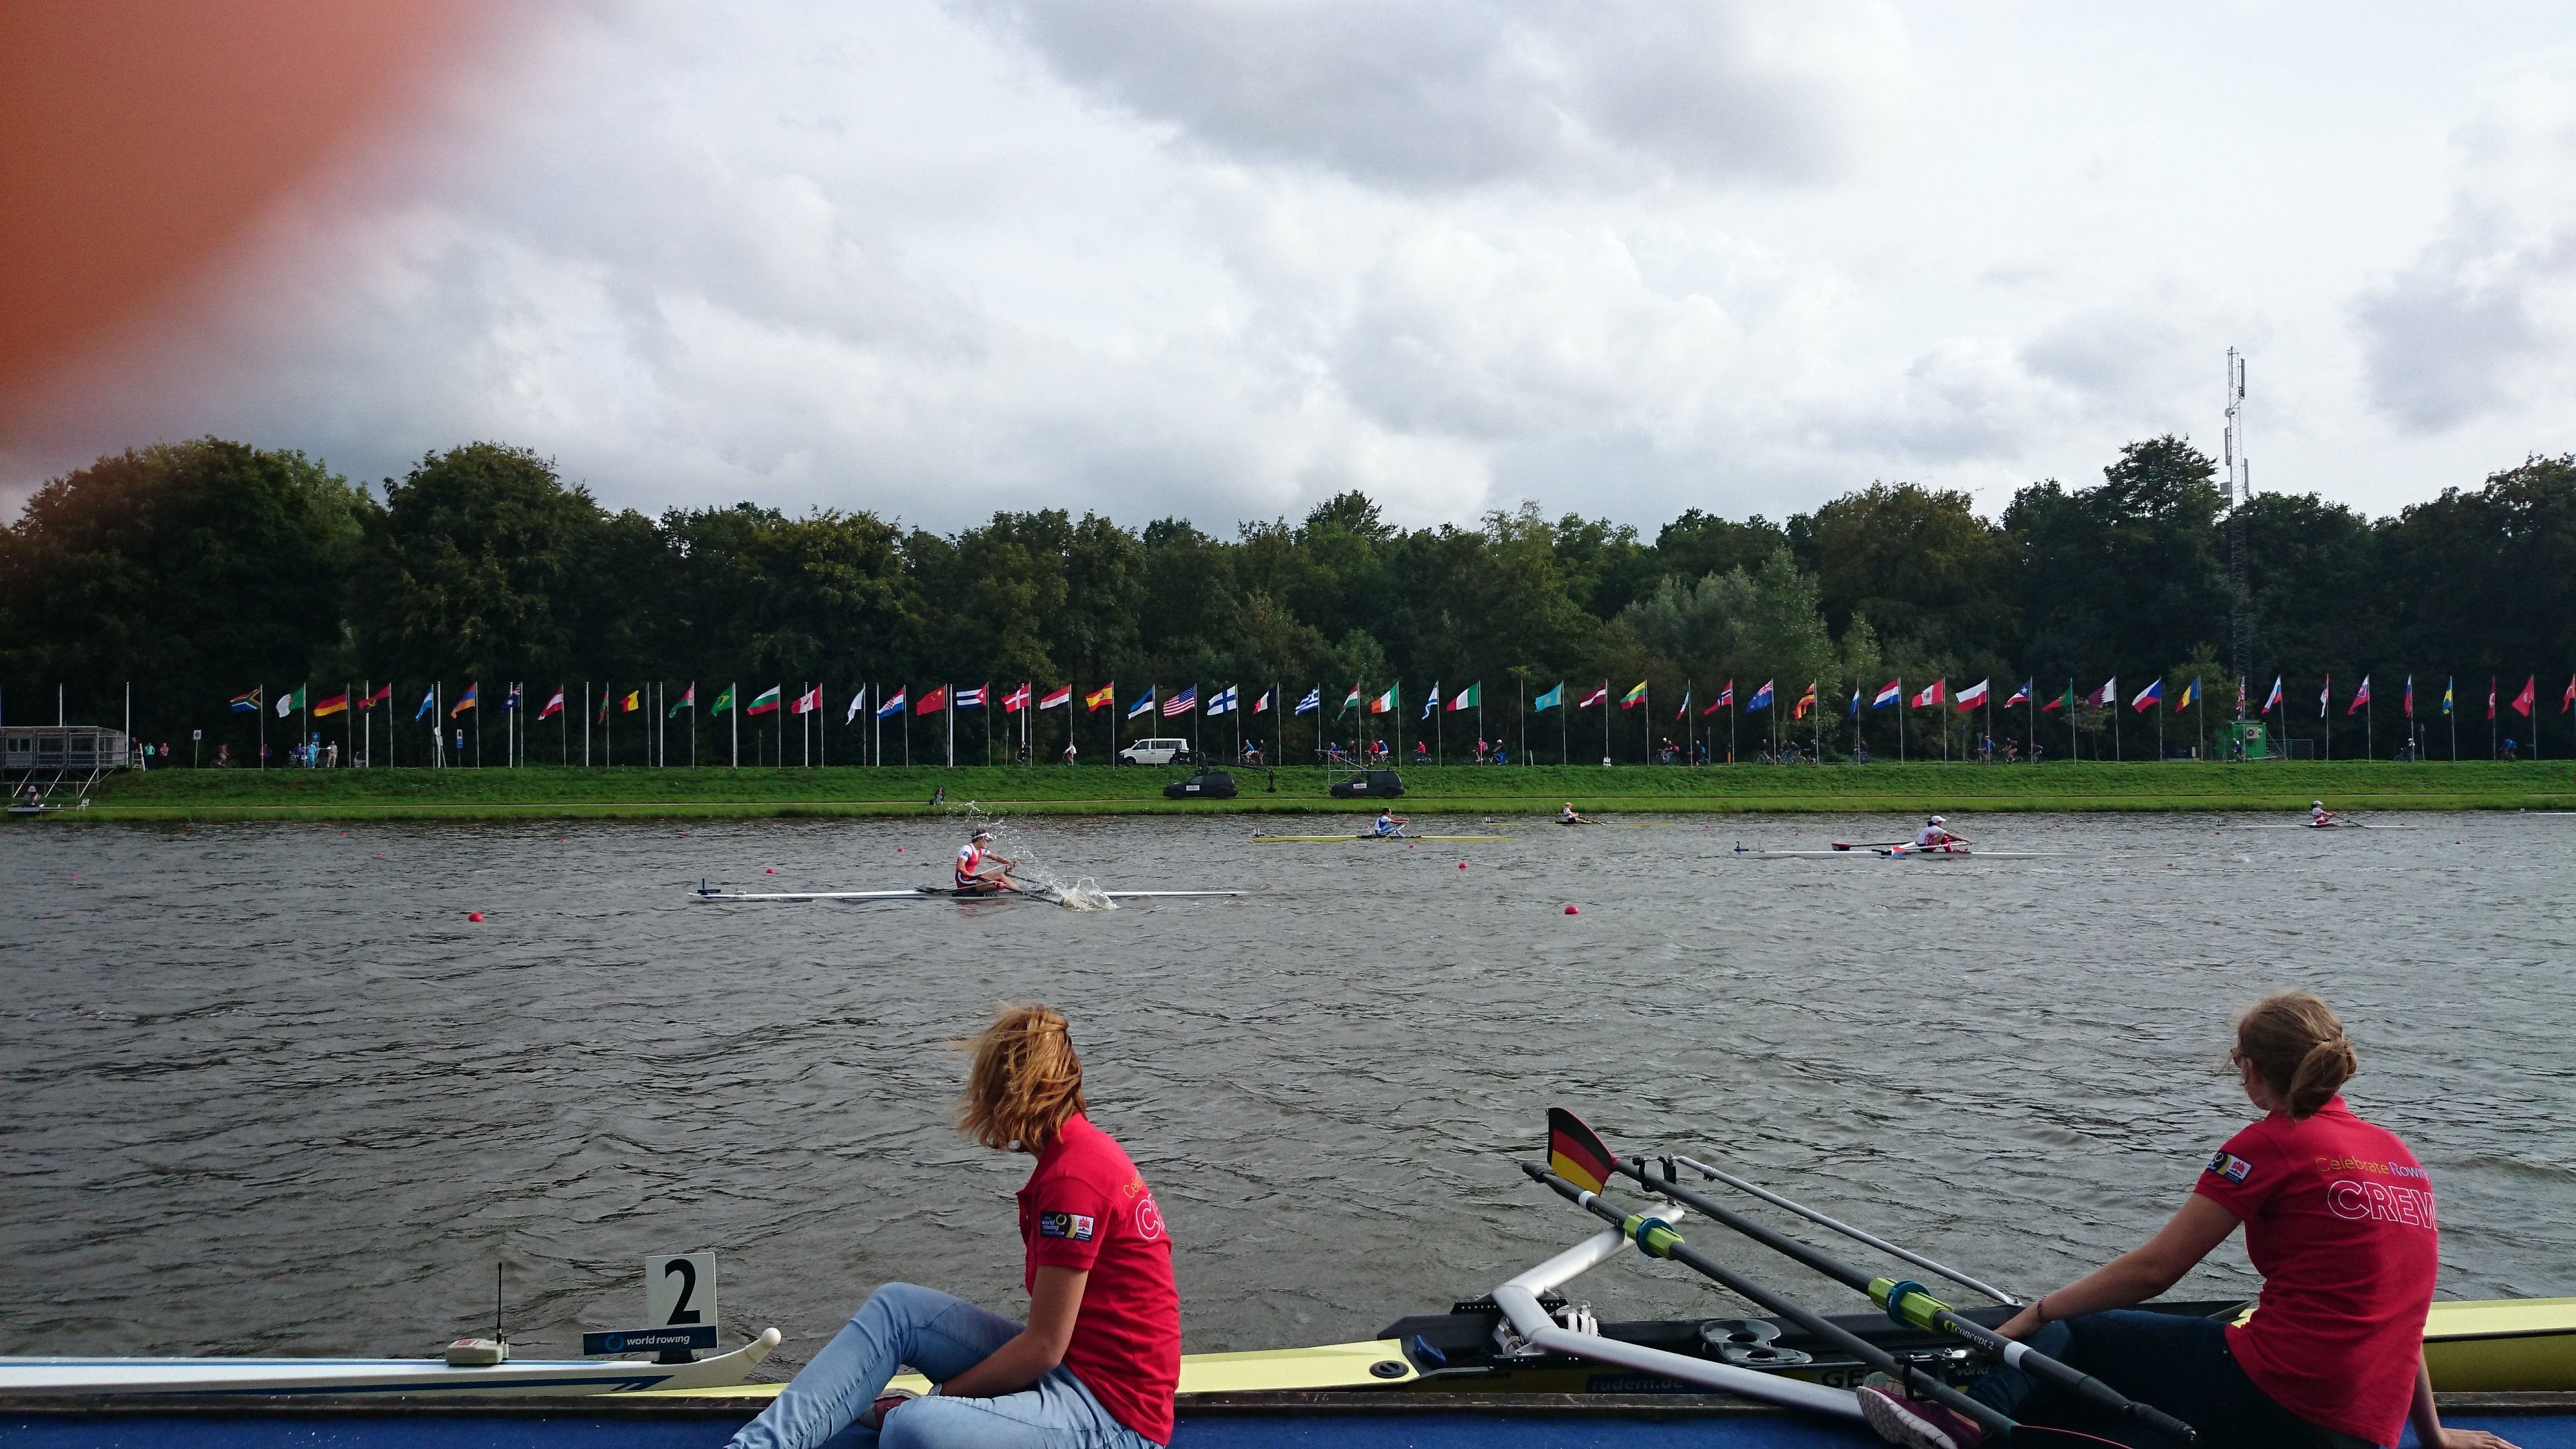 Worldchampionchips Amsterdam 2014, one million dollar picture: the belgium lightweight Eveline Peleman catches a crap at the 1900m mark and still won the goldmedal! It was incredible!